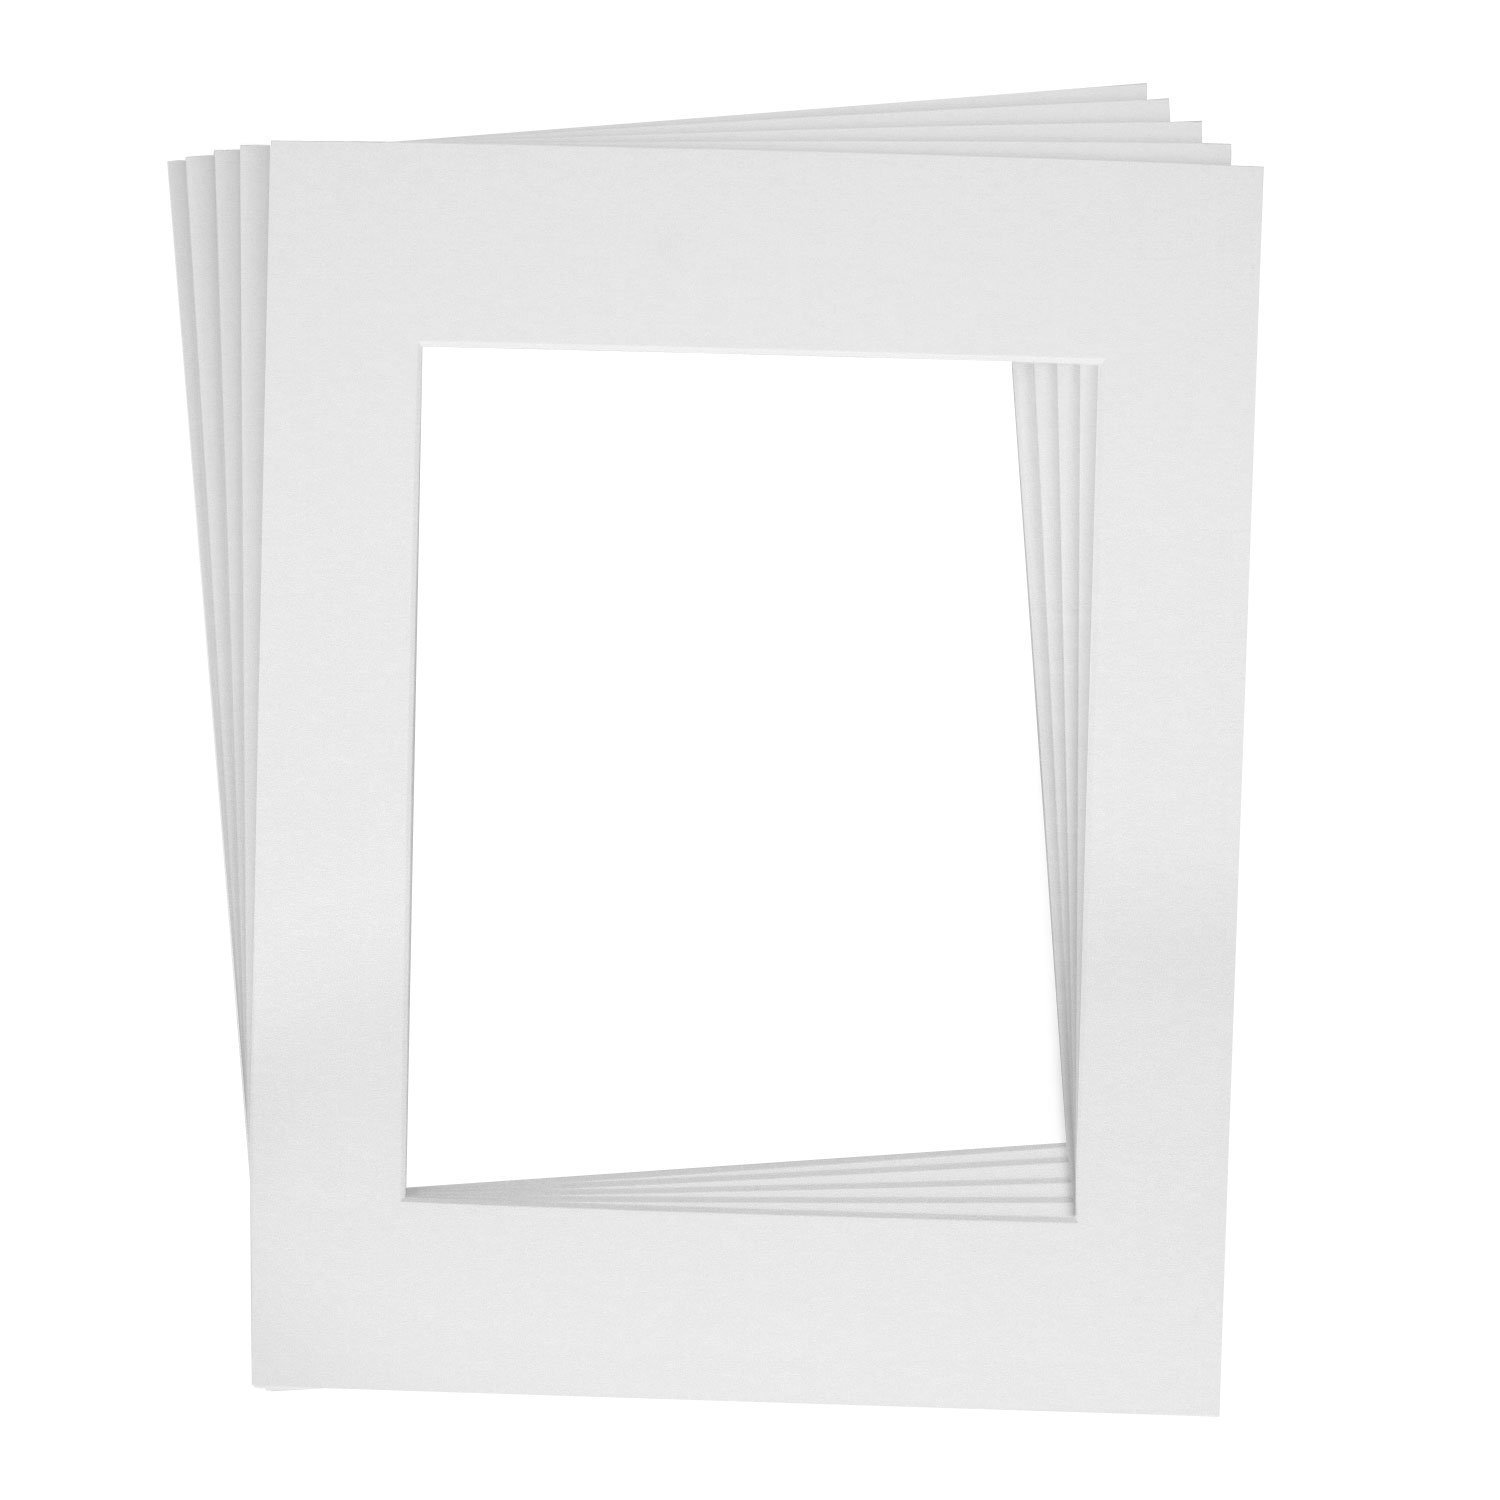 Golden State Art Pack of 5, 16x20 White Picture Mats Mattes with White Core Bevel Cut for 11x14 Photo + Backing + Bags by Golden State Art